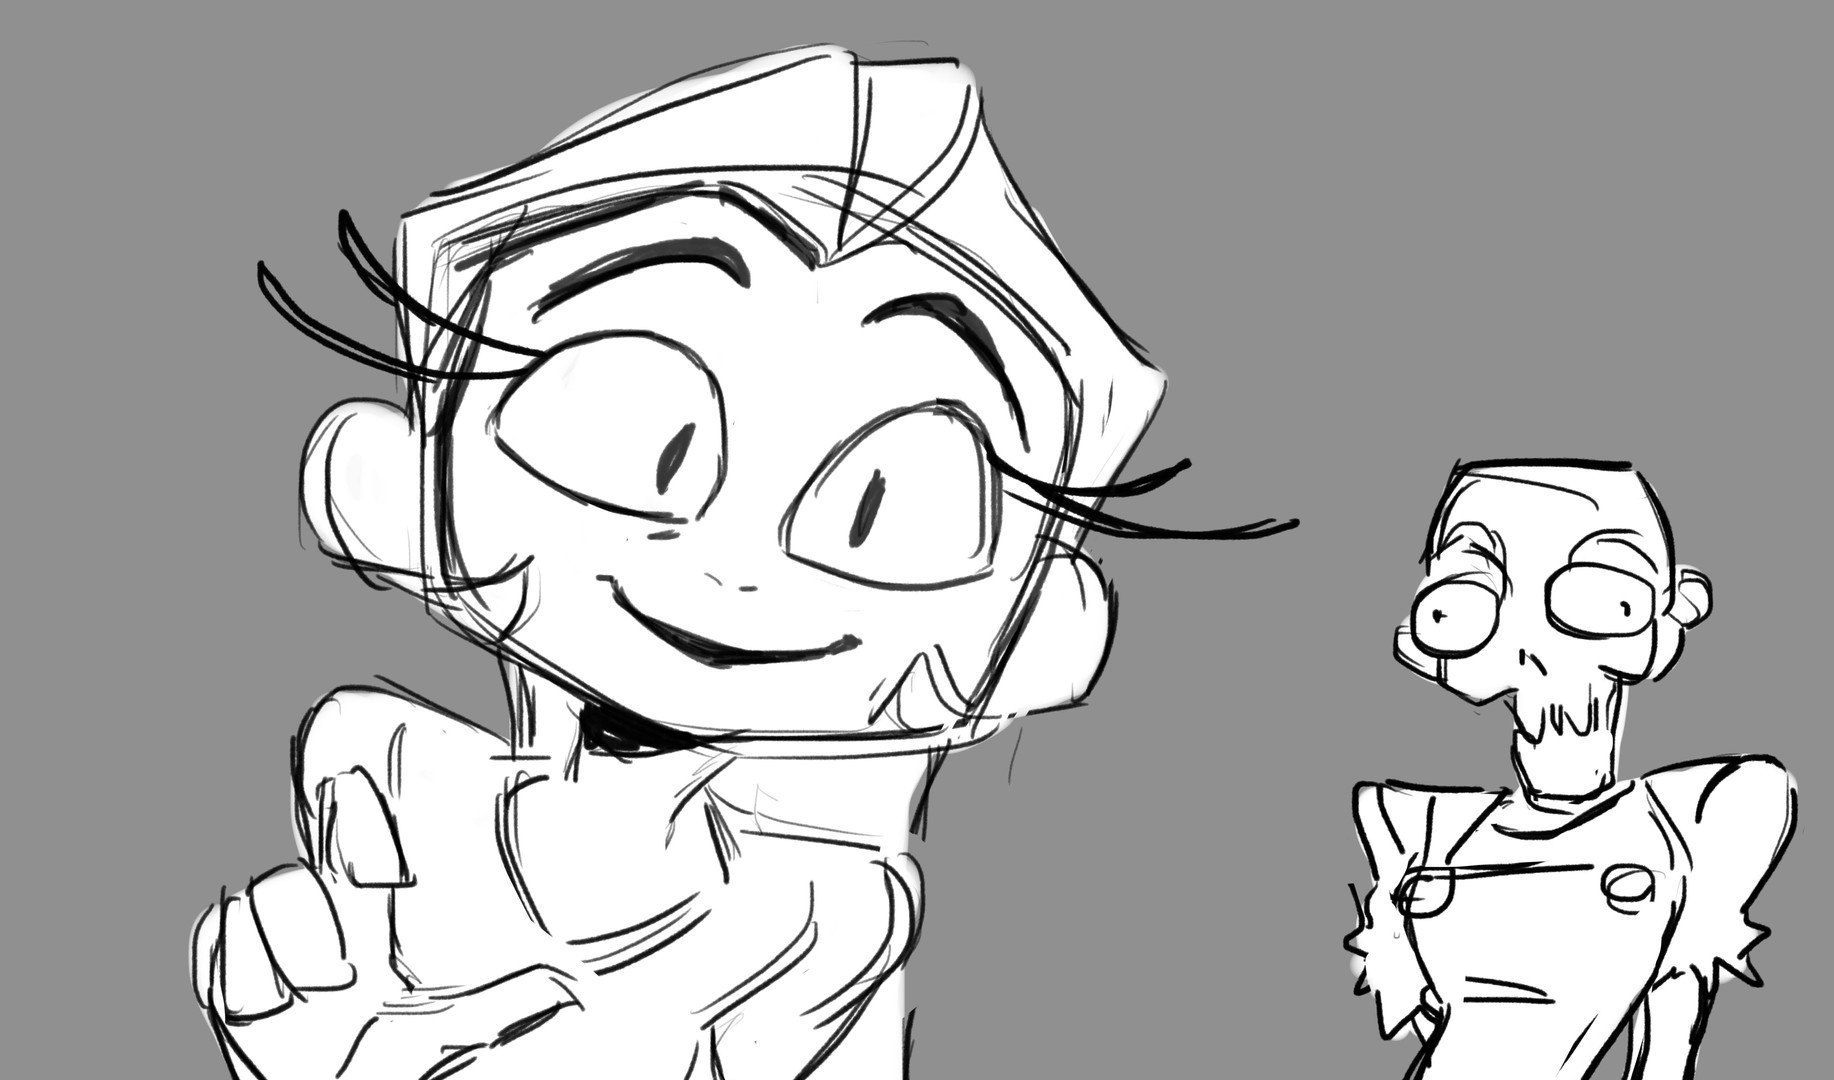 STORYBOARD - B - _0017_Layer Comp 17.jpg